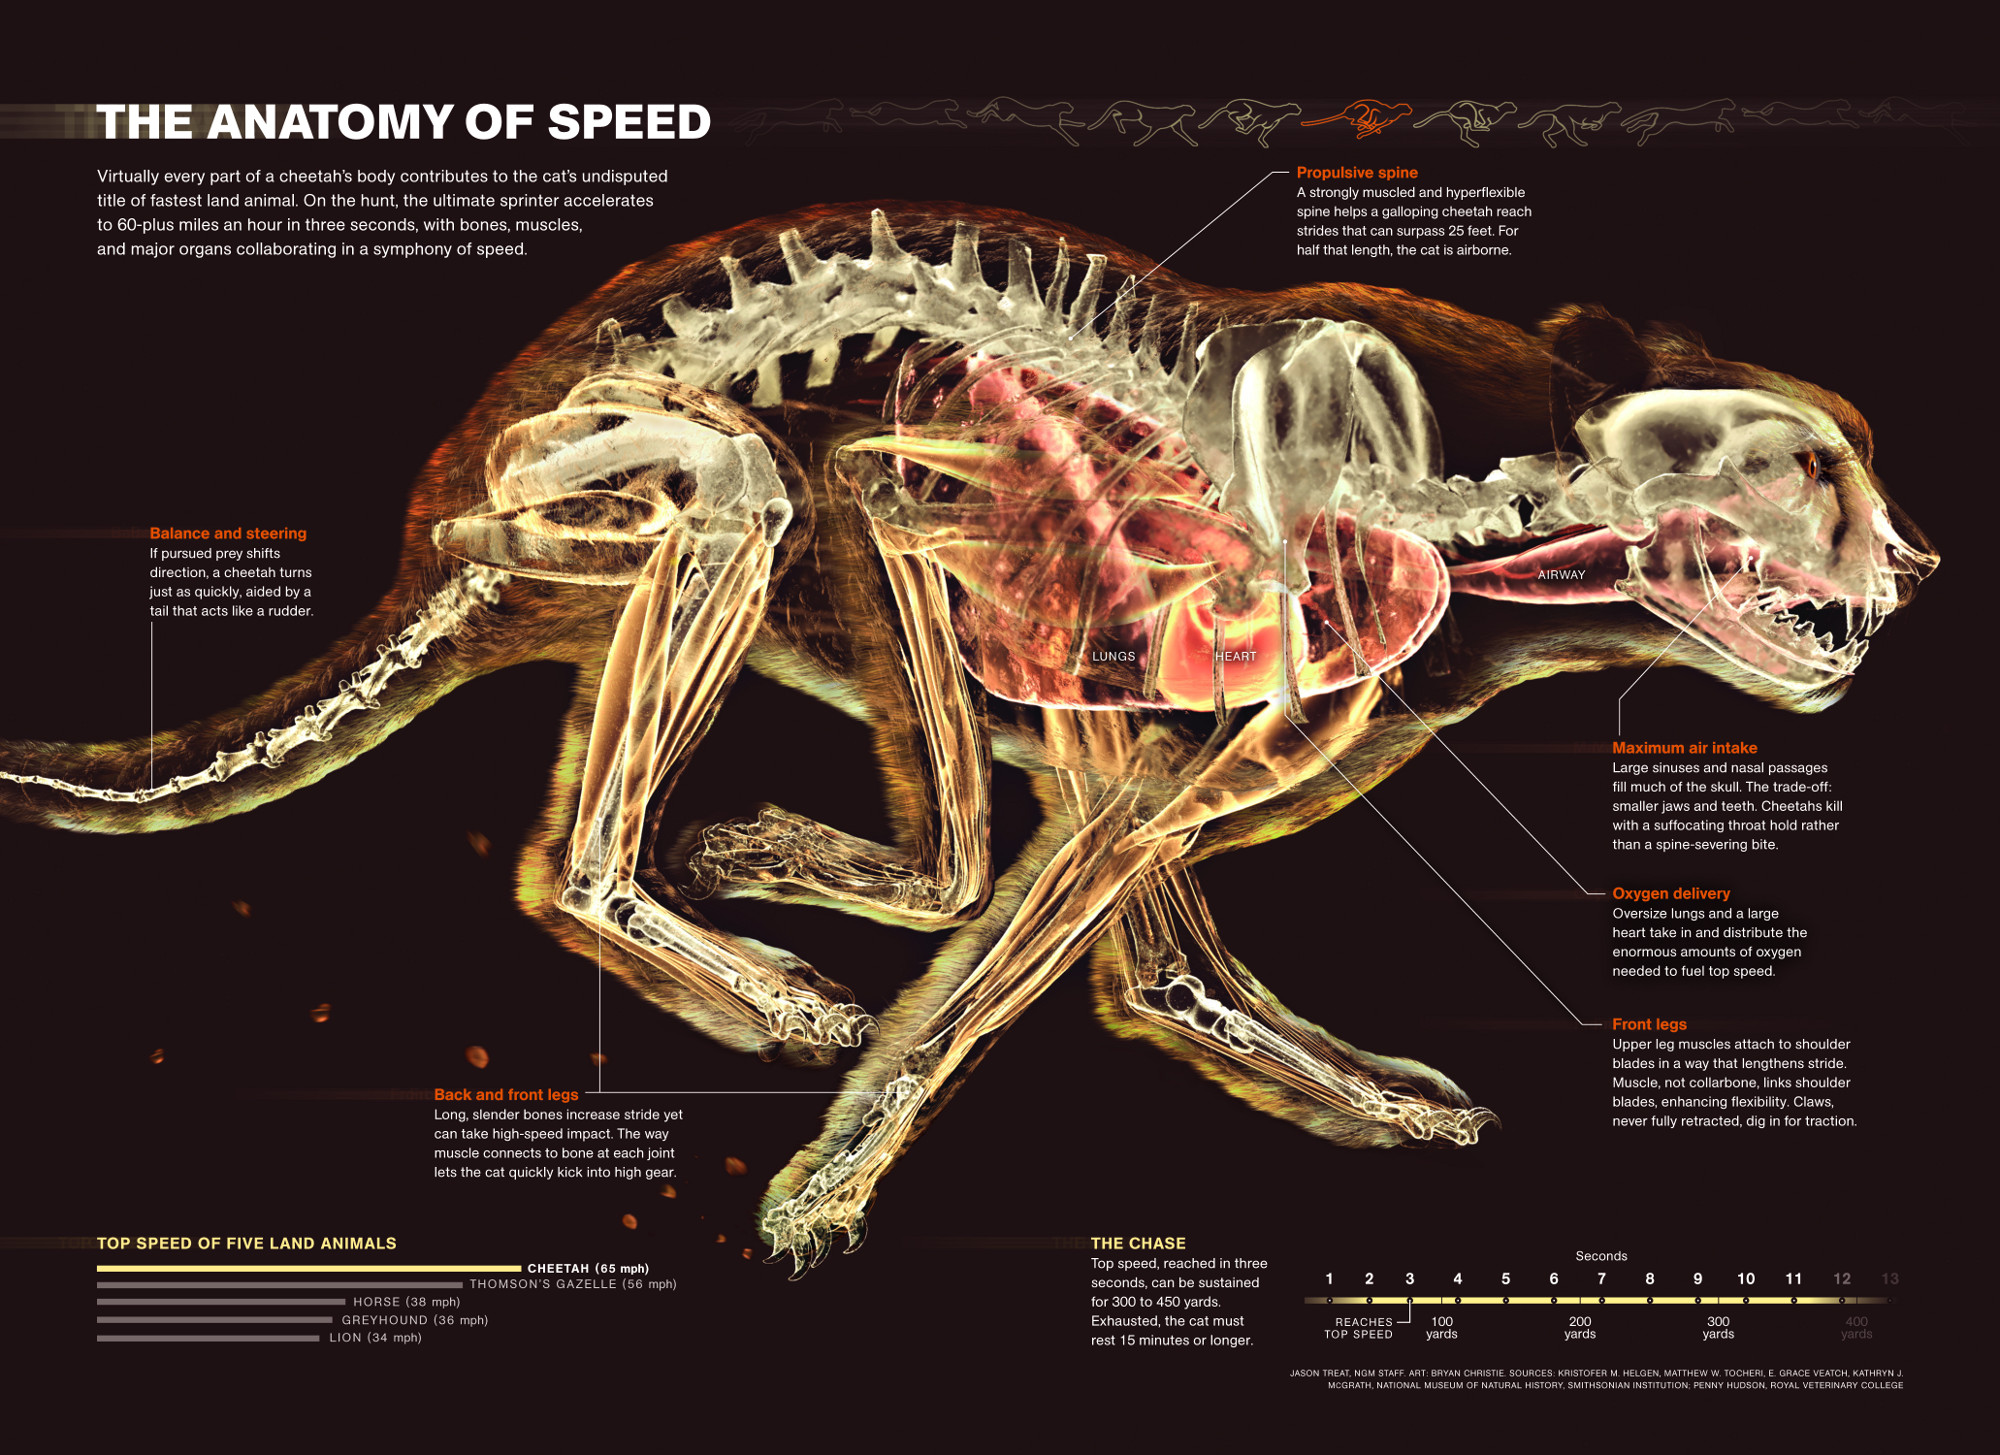 horse respiratory system diagram genie intellicode receiver wiring show not tell the rise of infographic science friday